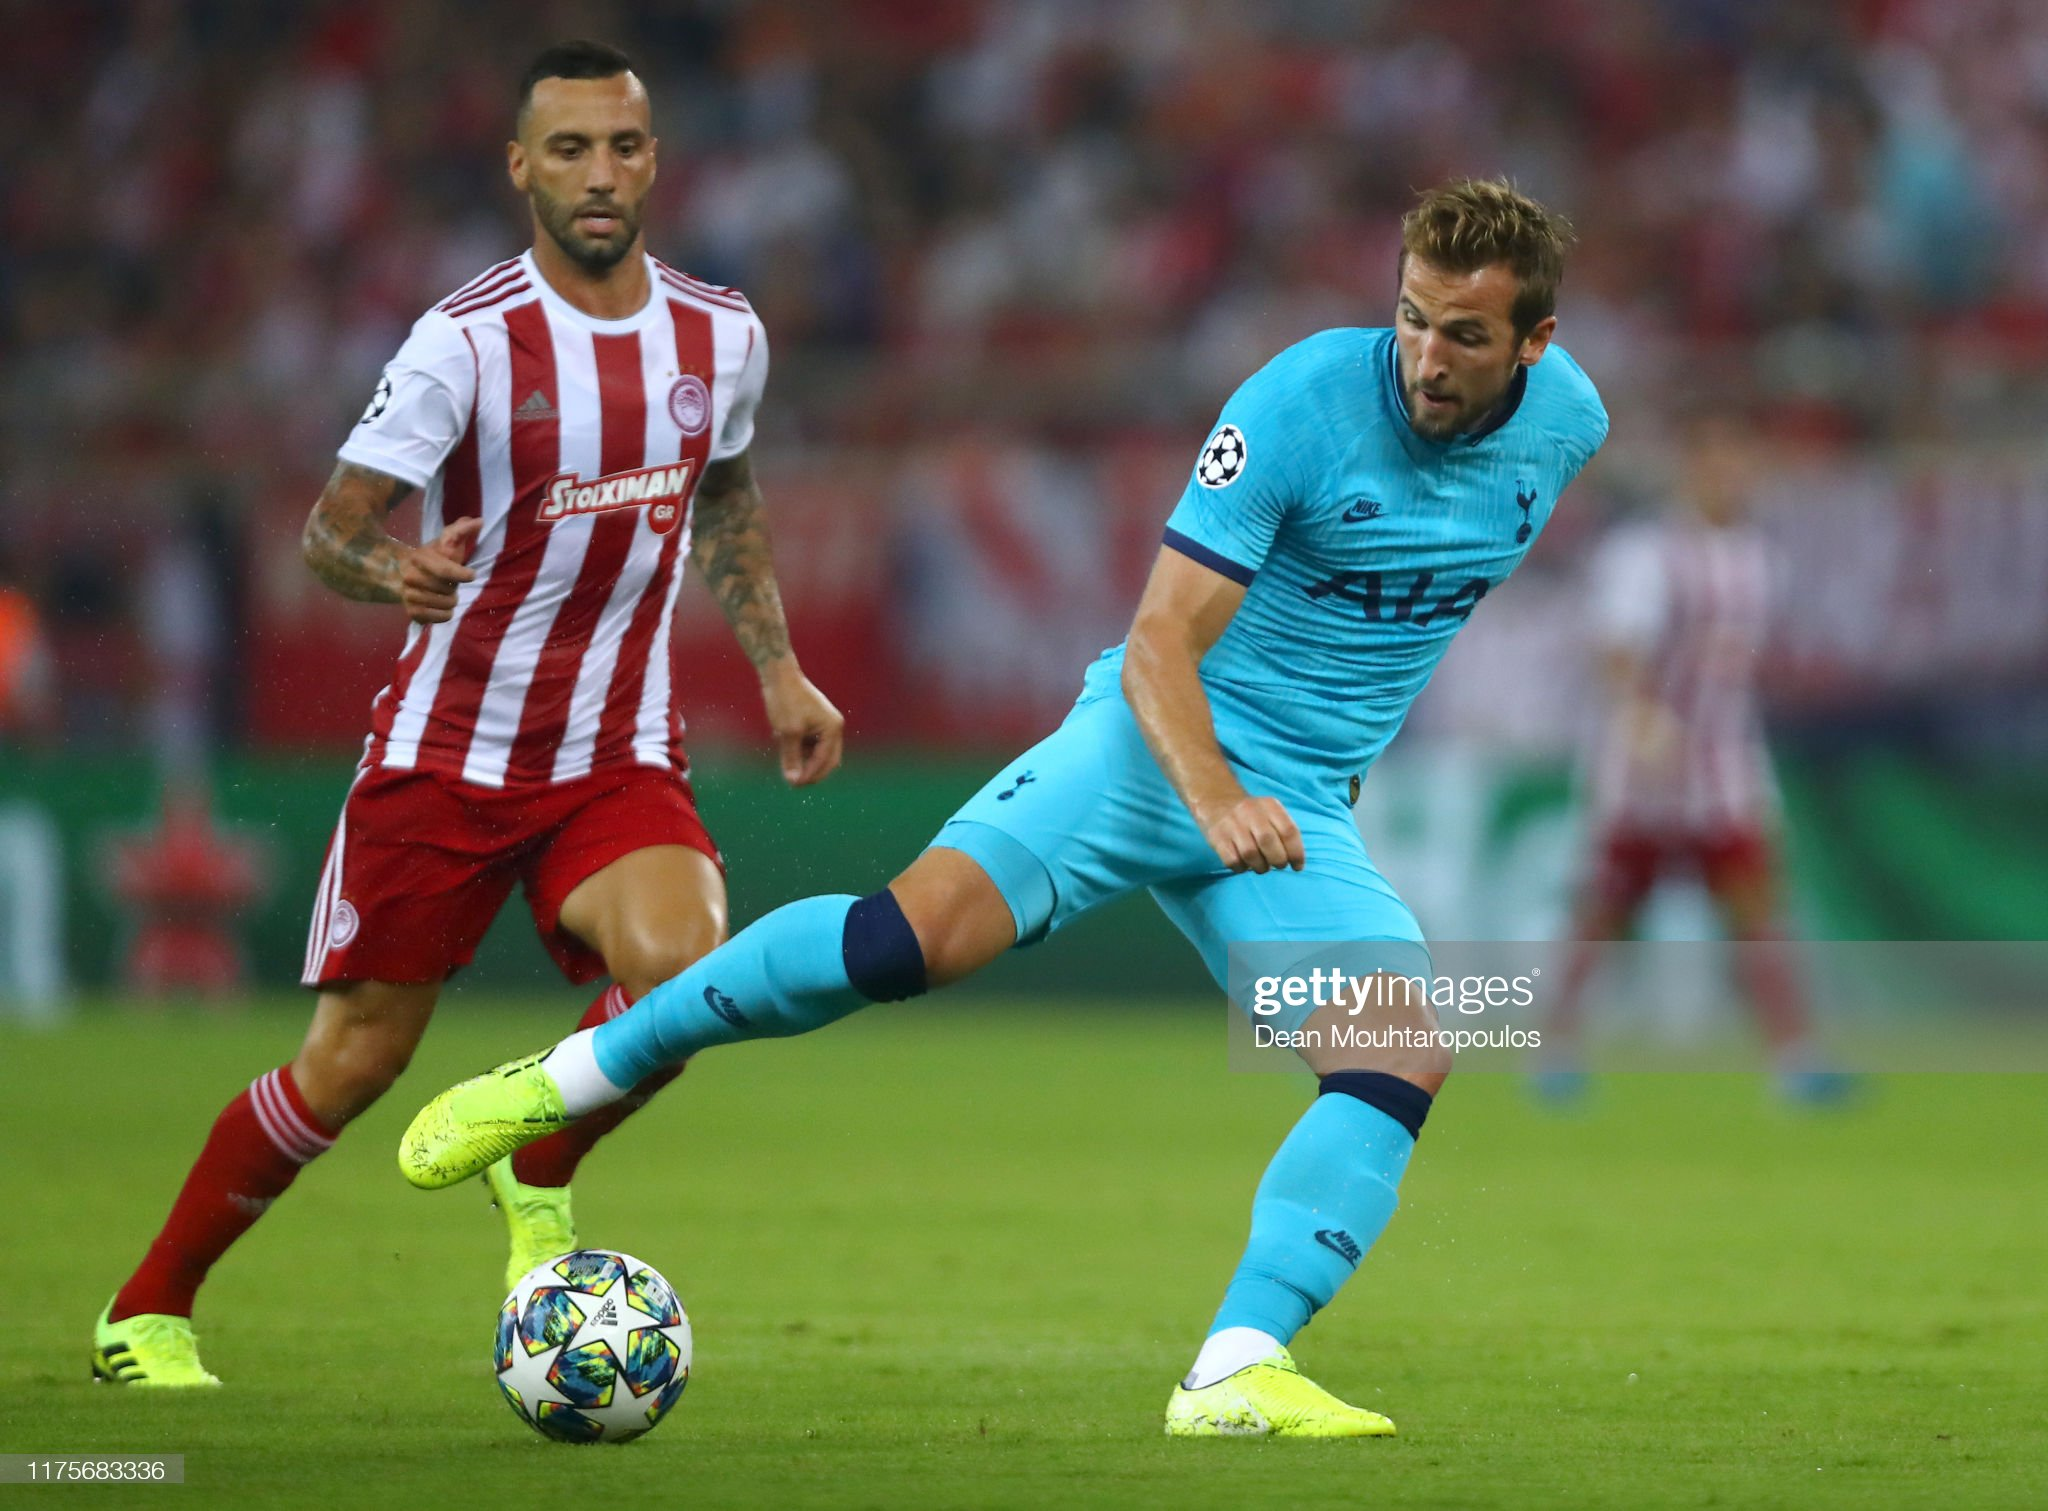 Tottenham v Olympiakos preview, prediction and odds